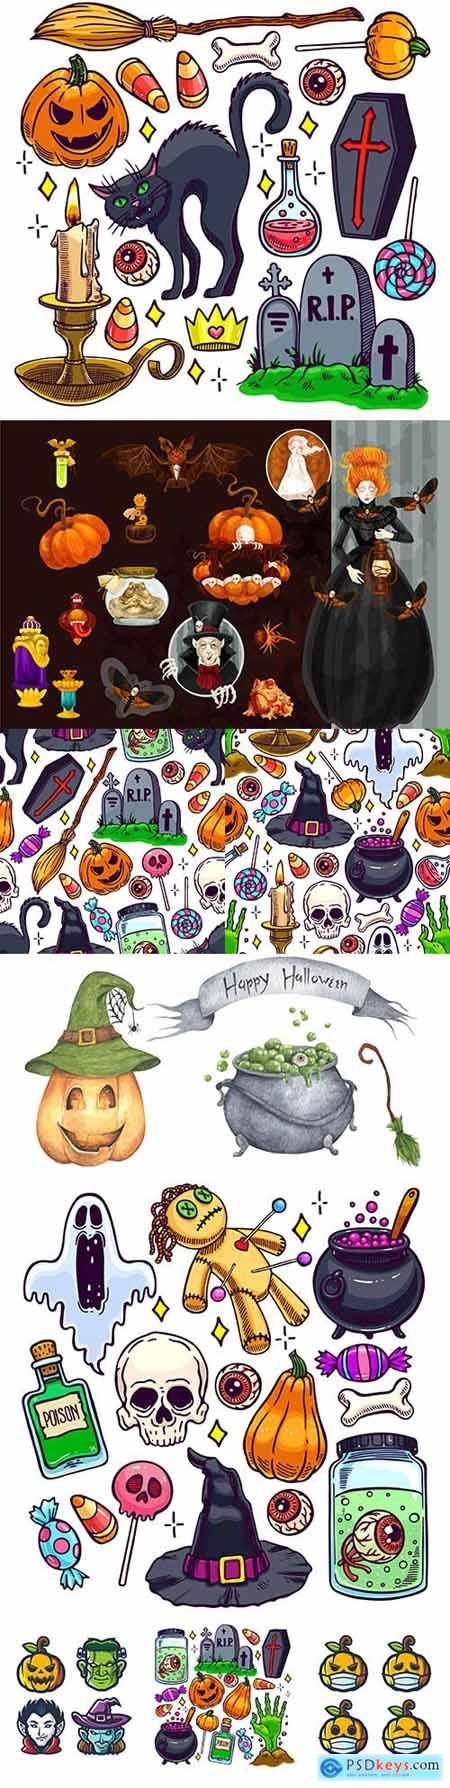 Halloween holiday elements and items painted illustration